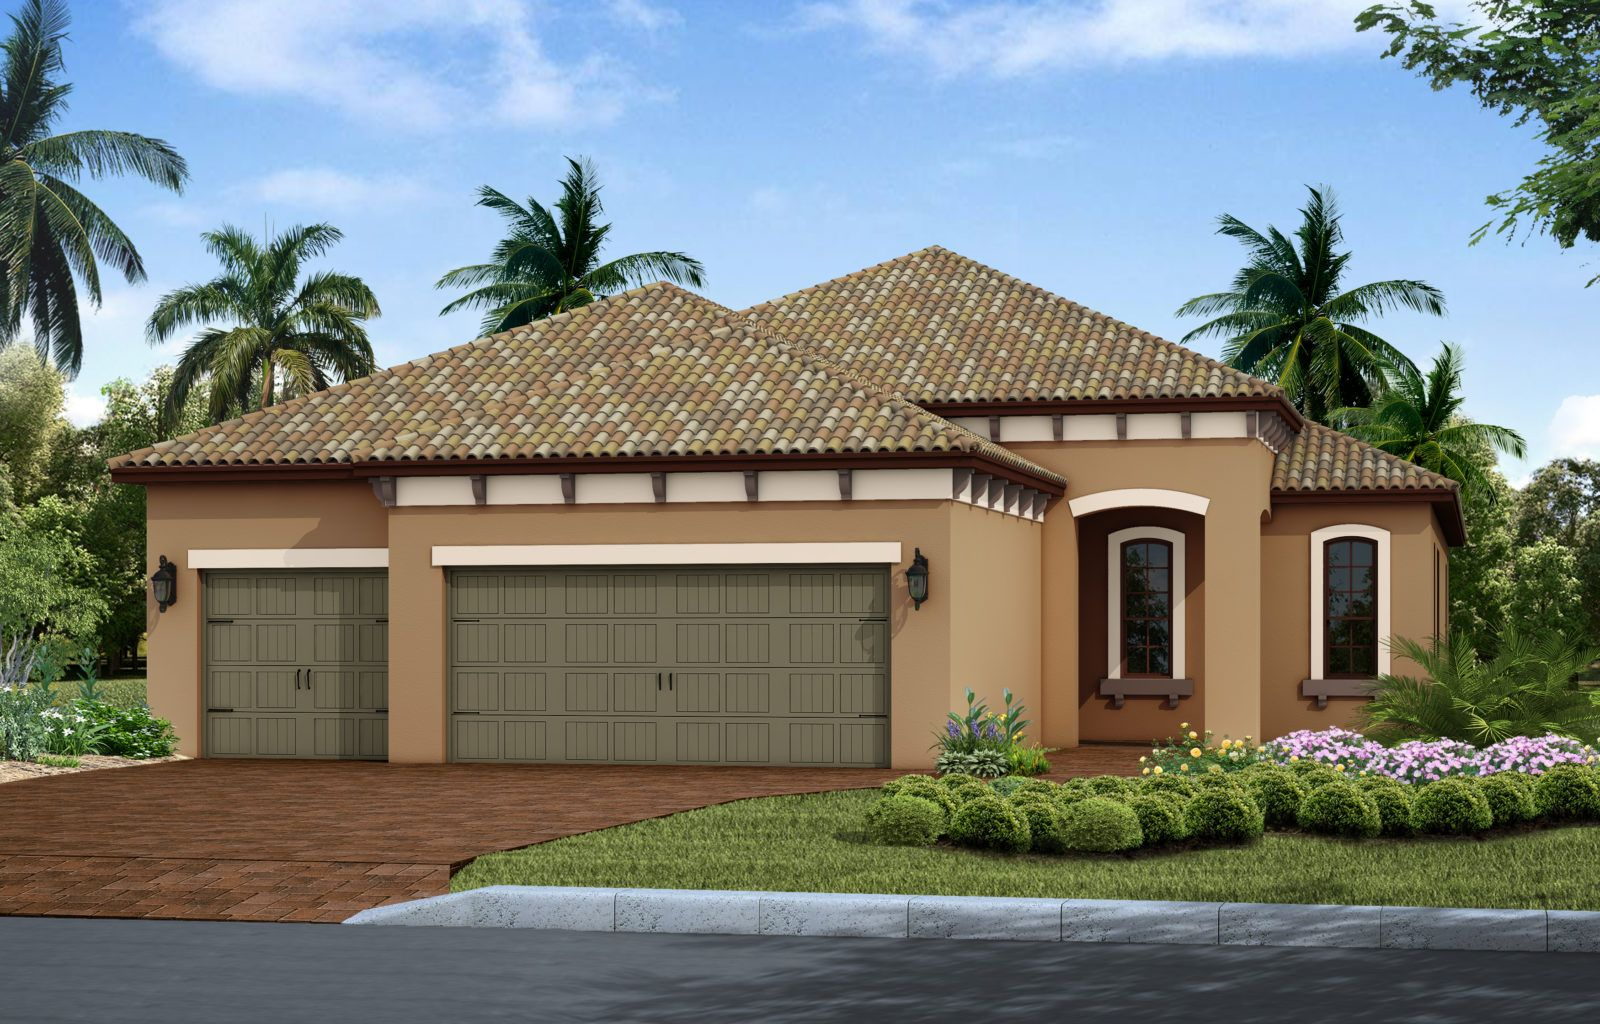 Sea Star Plan at Boca Royale Golf & Country Club in ...